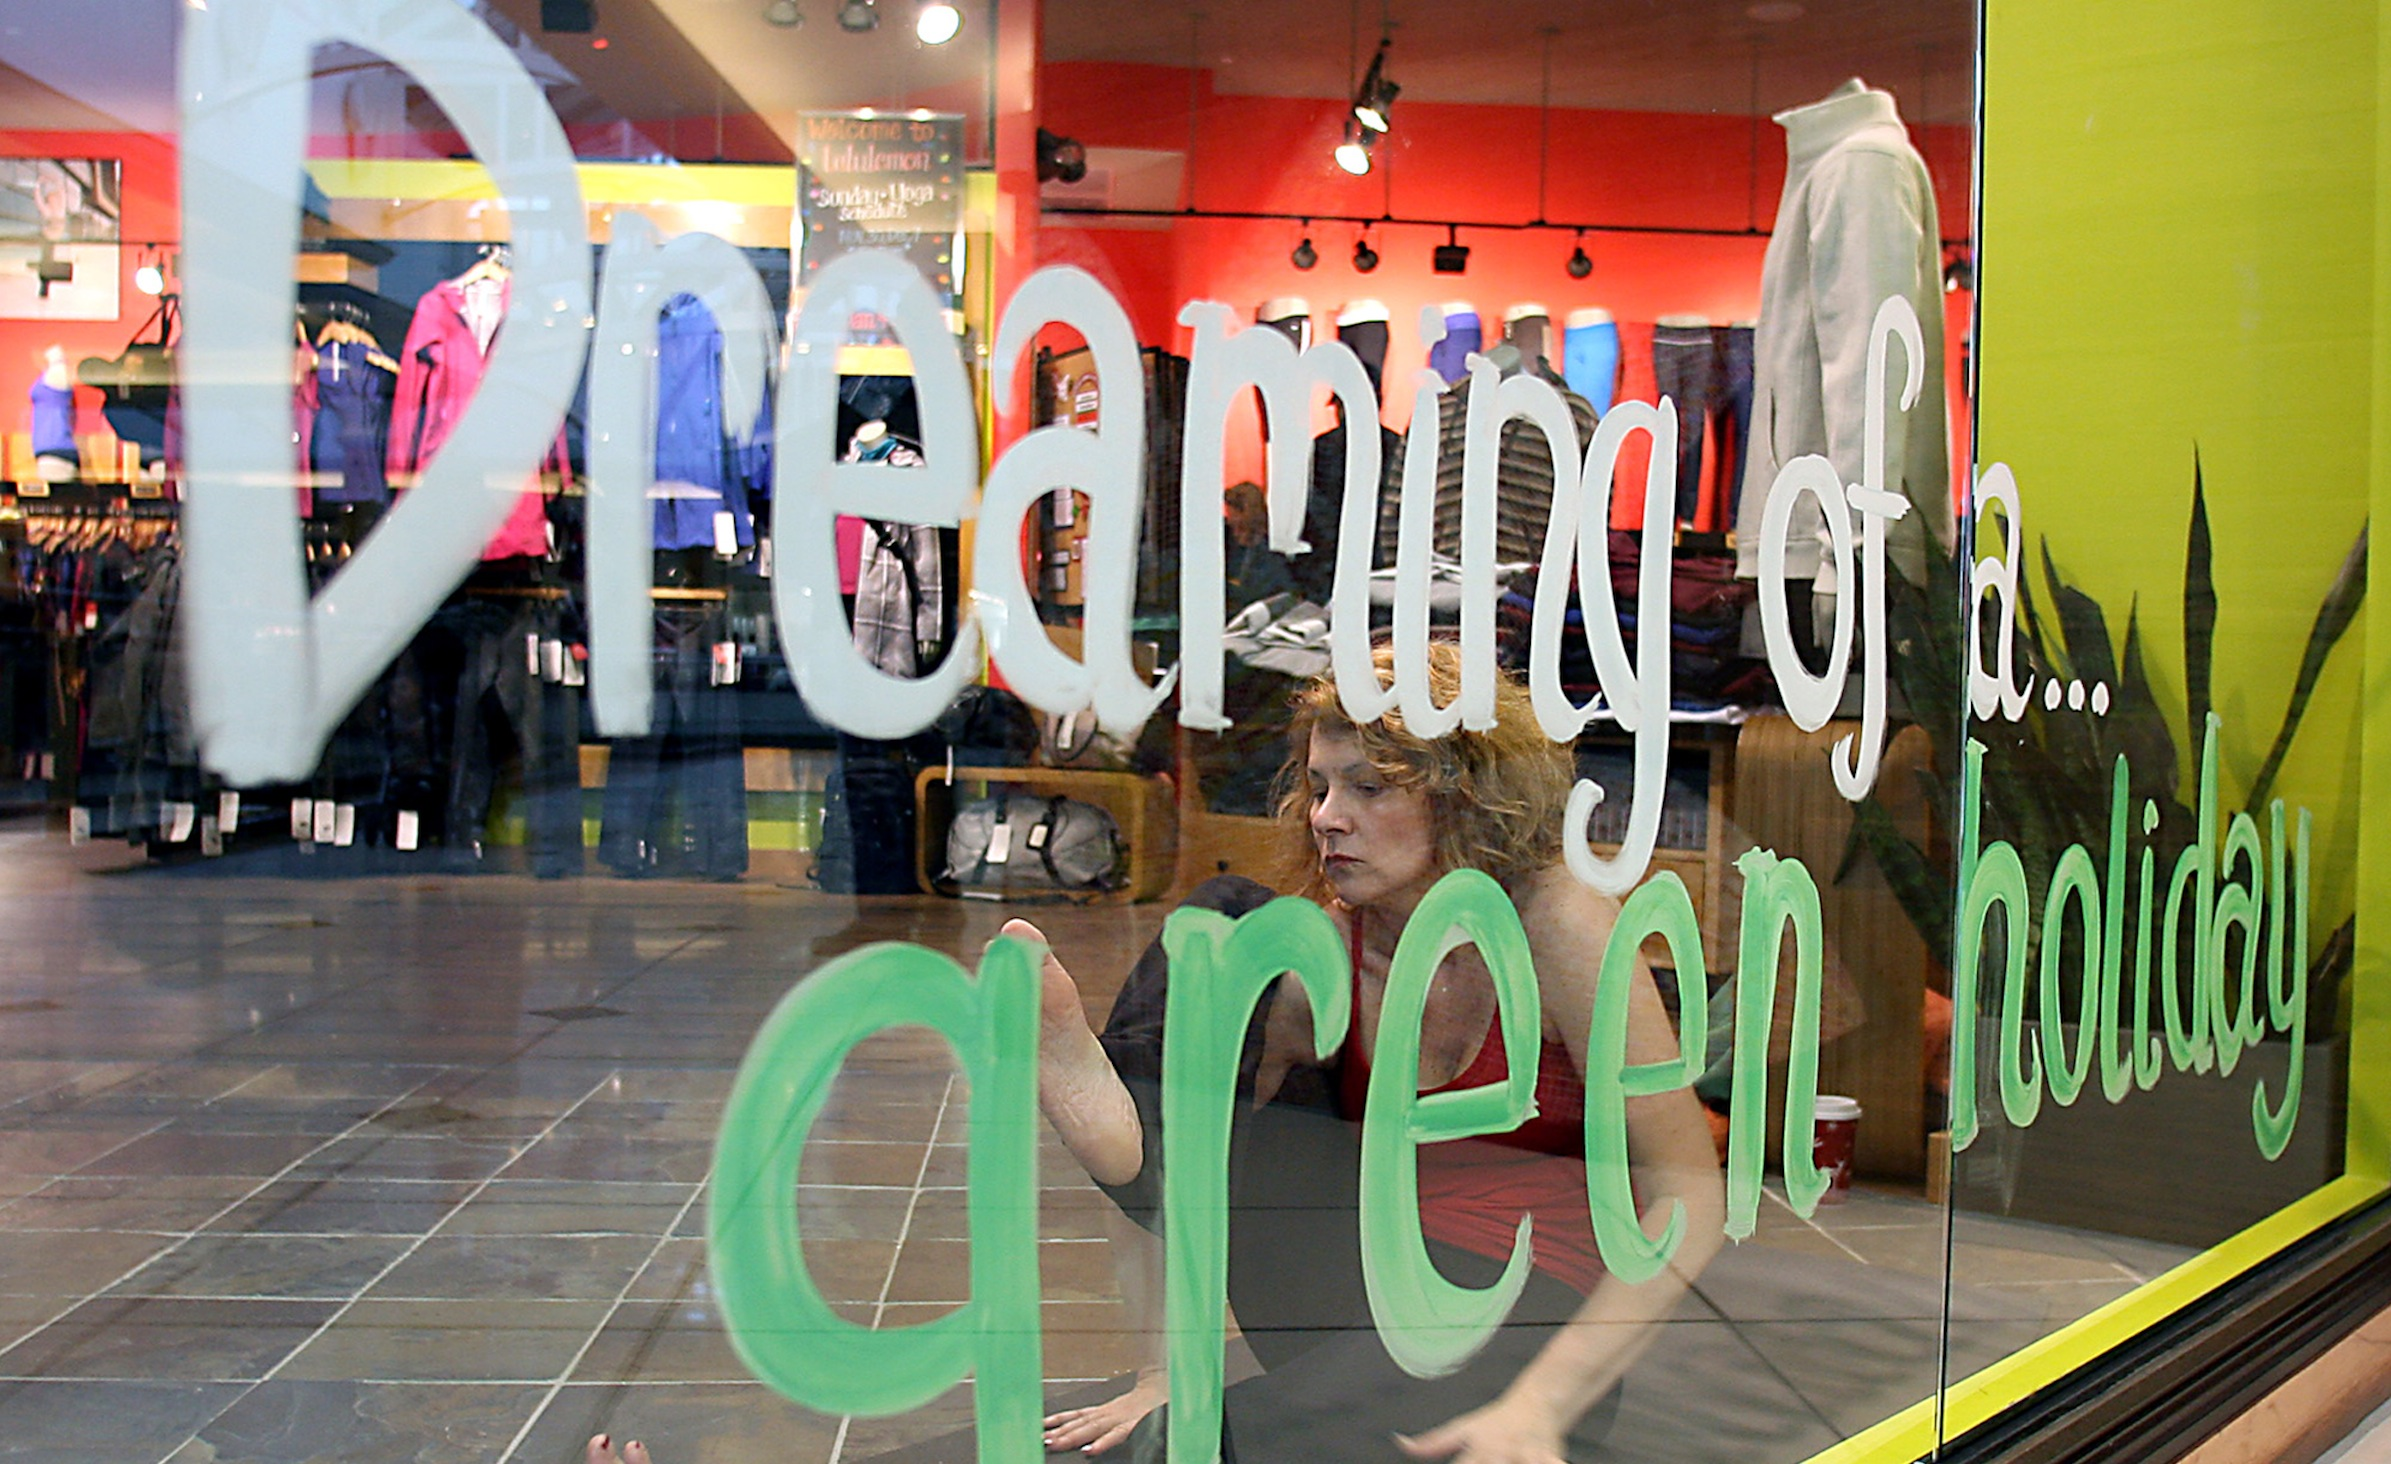 Yoga trainer Natalie Mitoraj of Rochester, Mich. performs yoga for passing shoppers behind painted glass with the sentiment 'Dreaming of a green holiday', at the LuluLemon Athletica store located at the Somerset Collection in Troy, Mich. during  Black Friday Nov. 28, 2008.